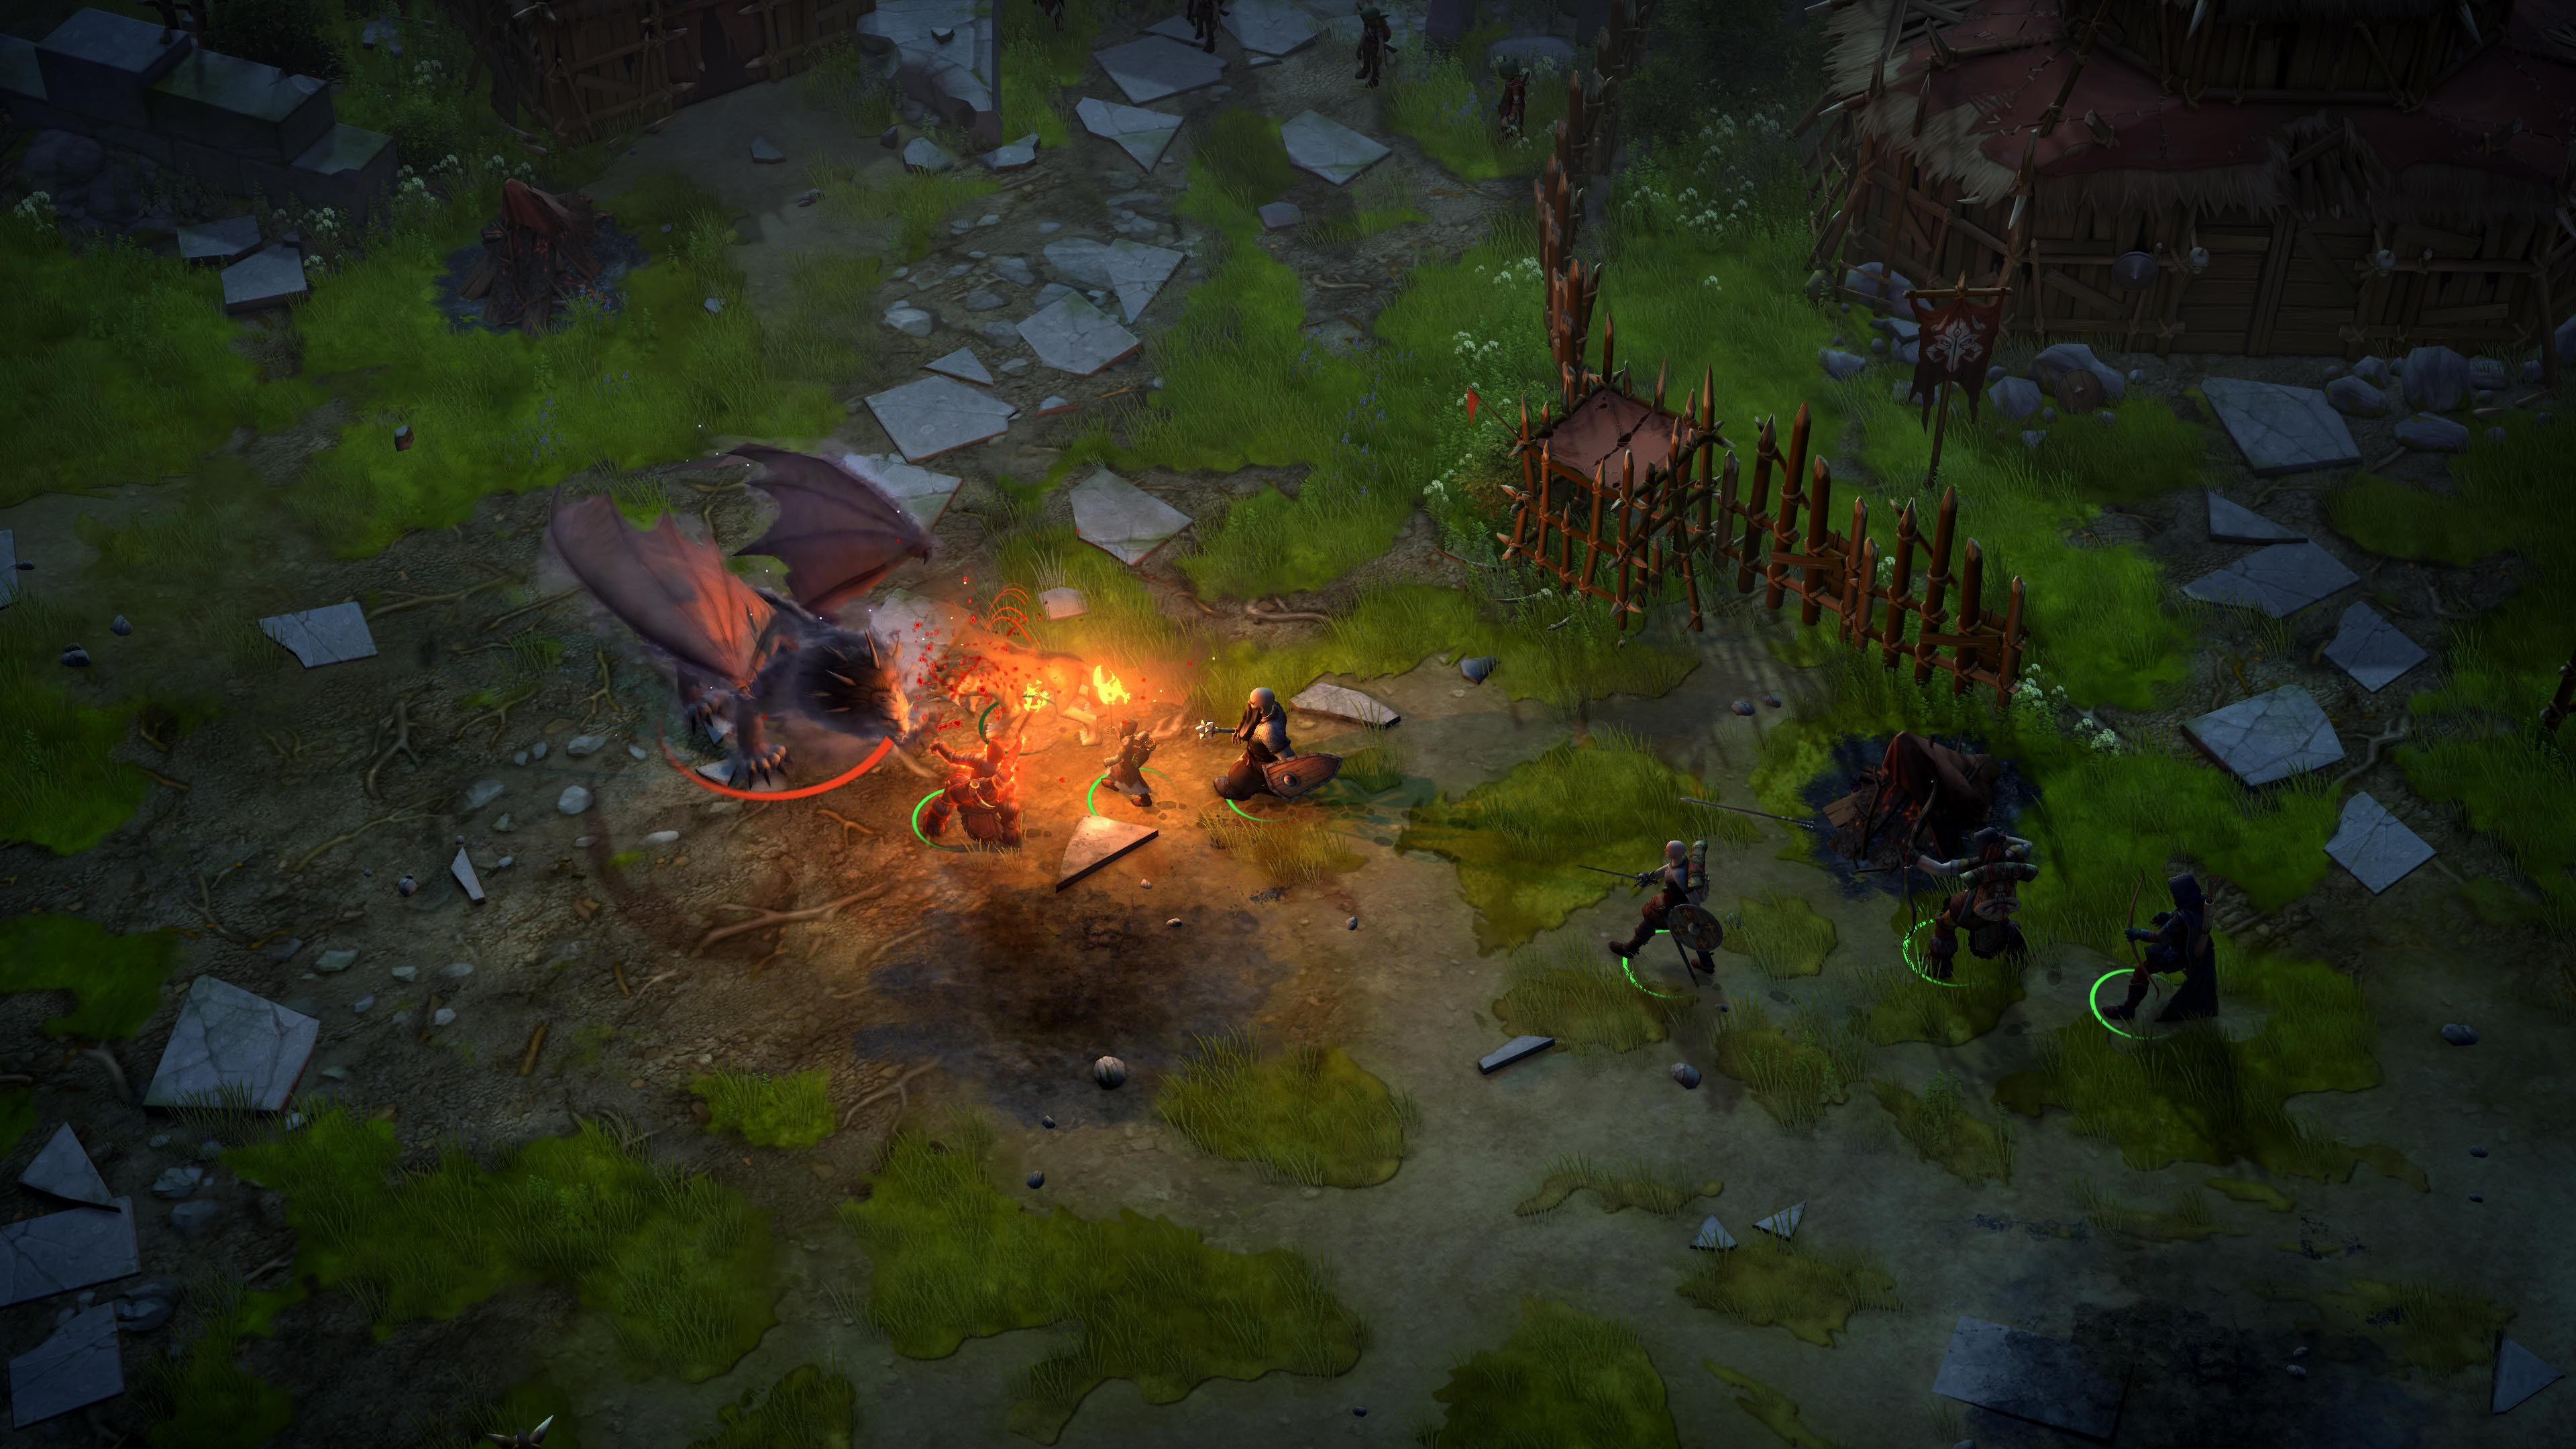 cRPG Pathfinder: Kingmaker To Launch in August, Published by